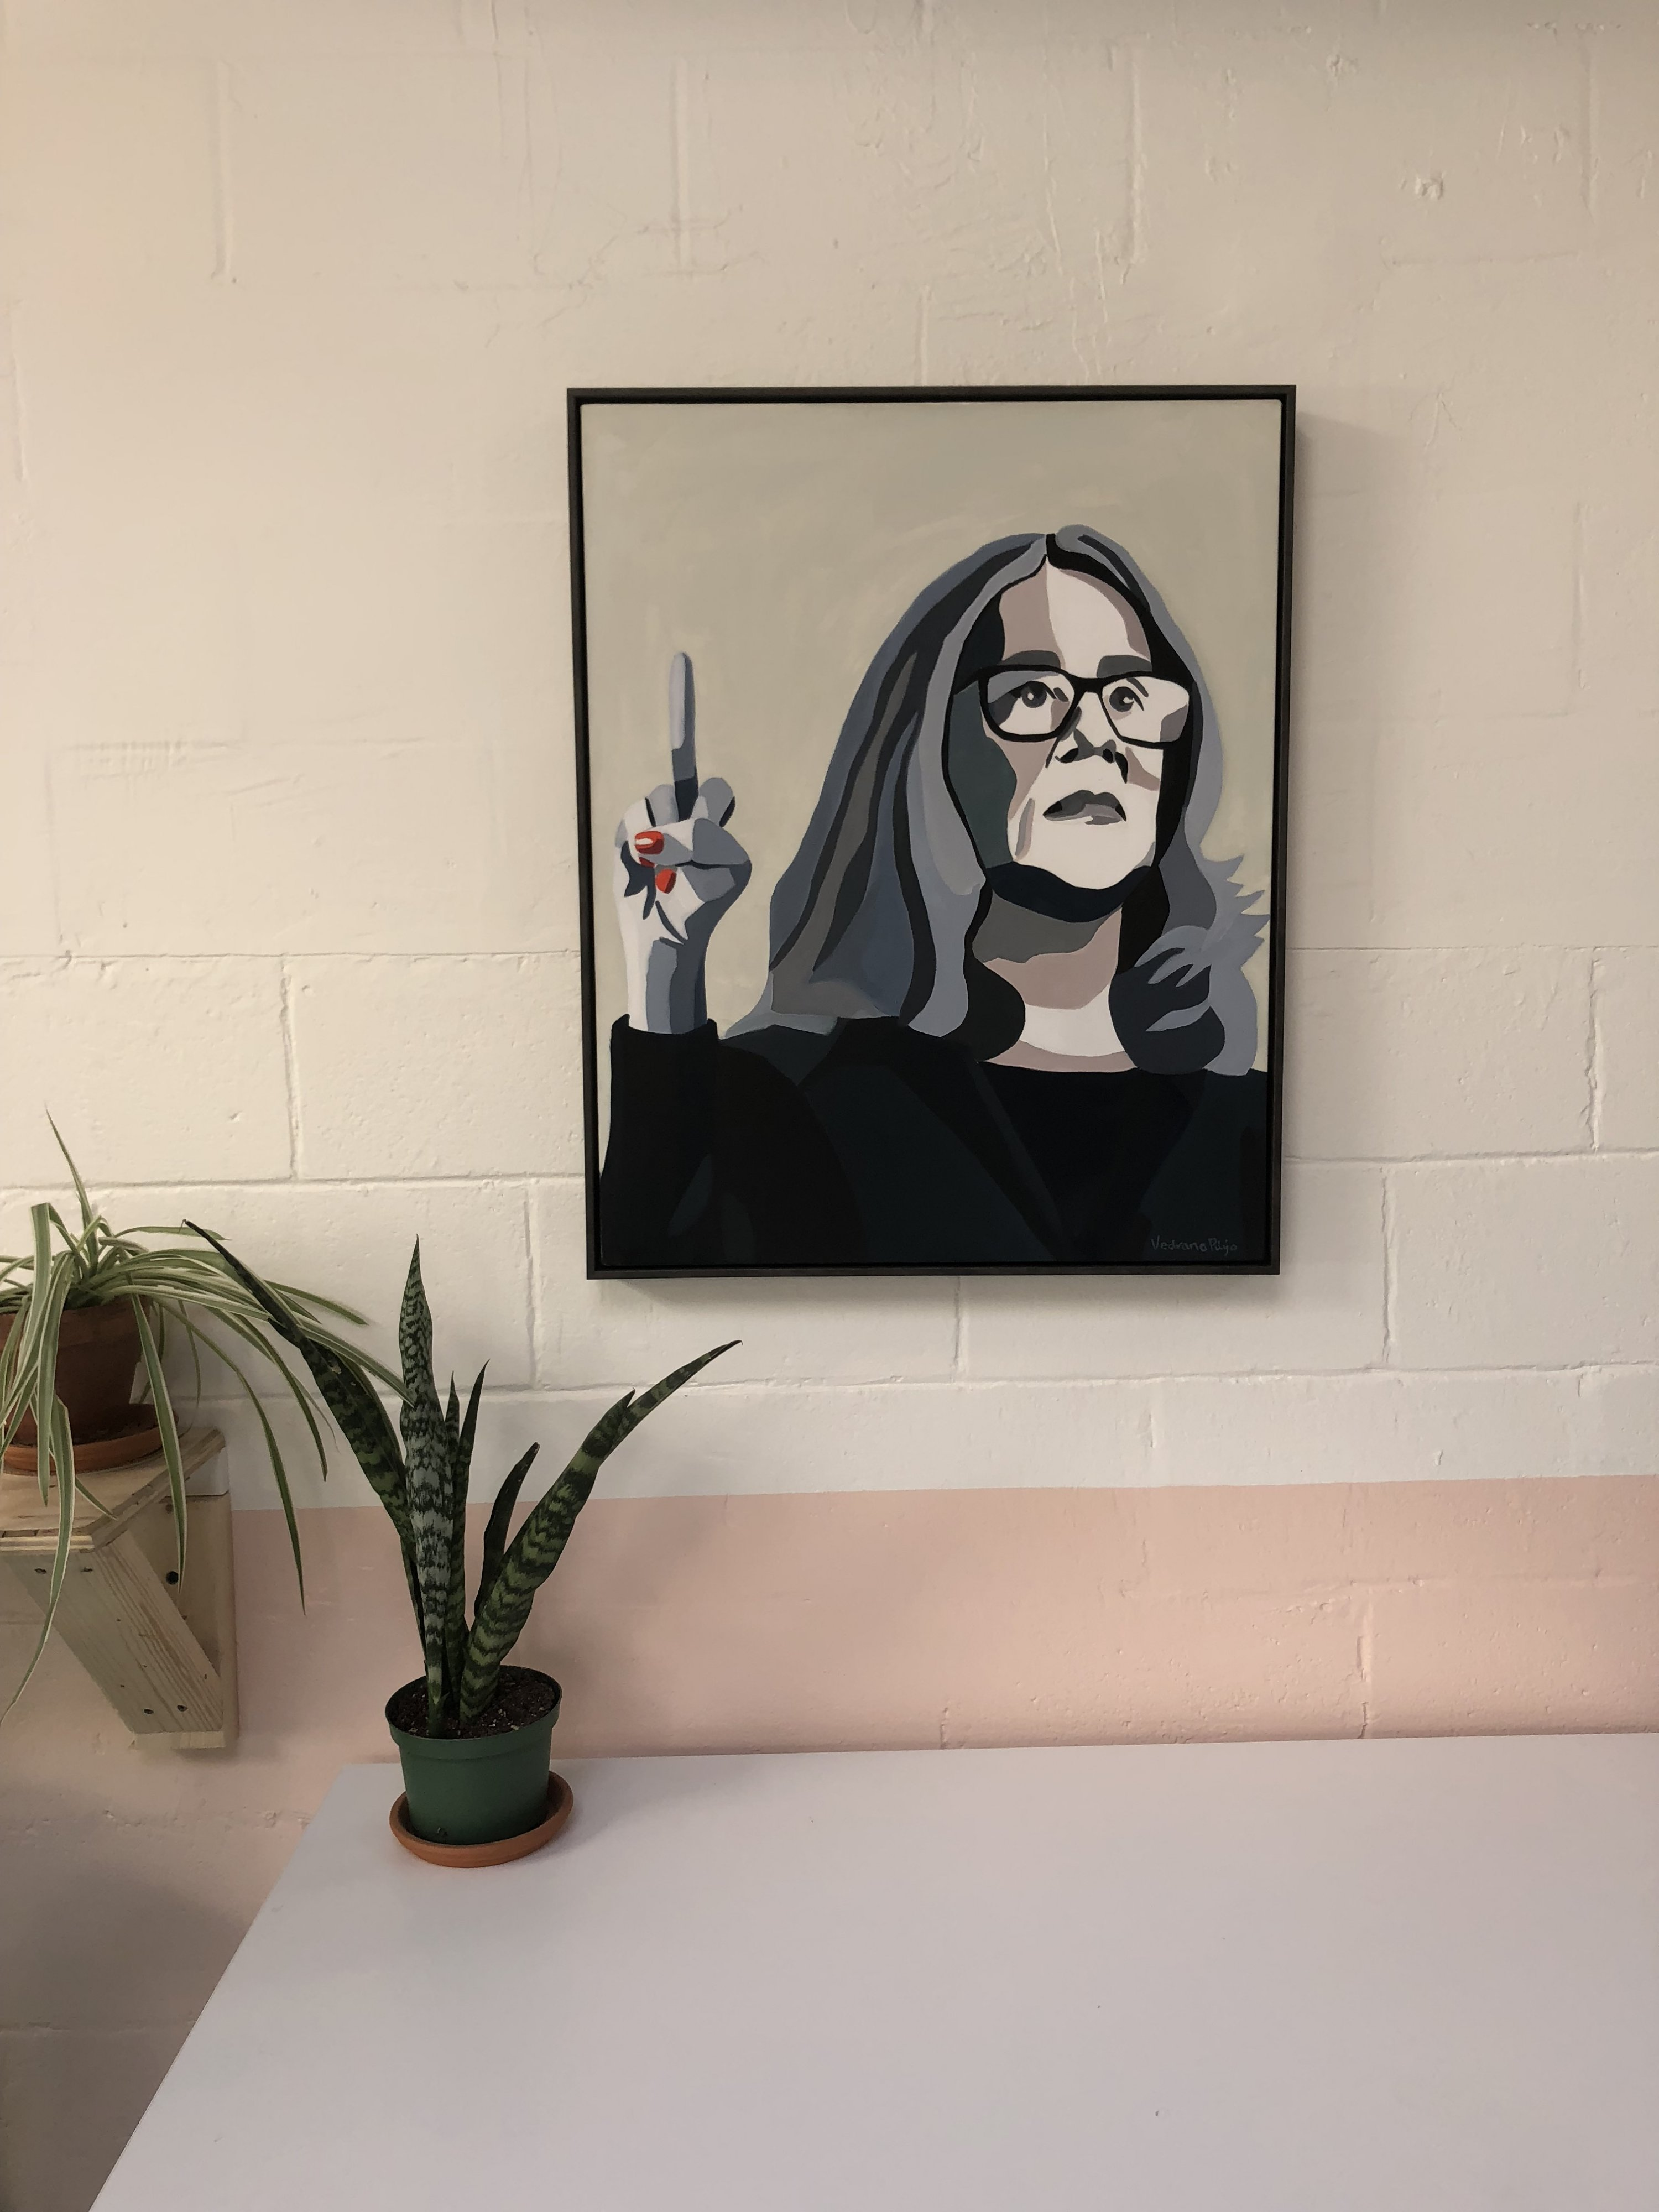 A painting of Christine Blasey Ford hangs on the wall.